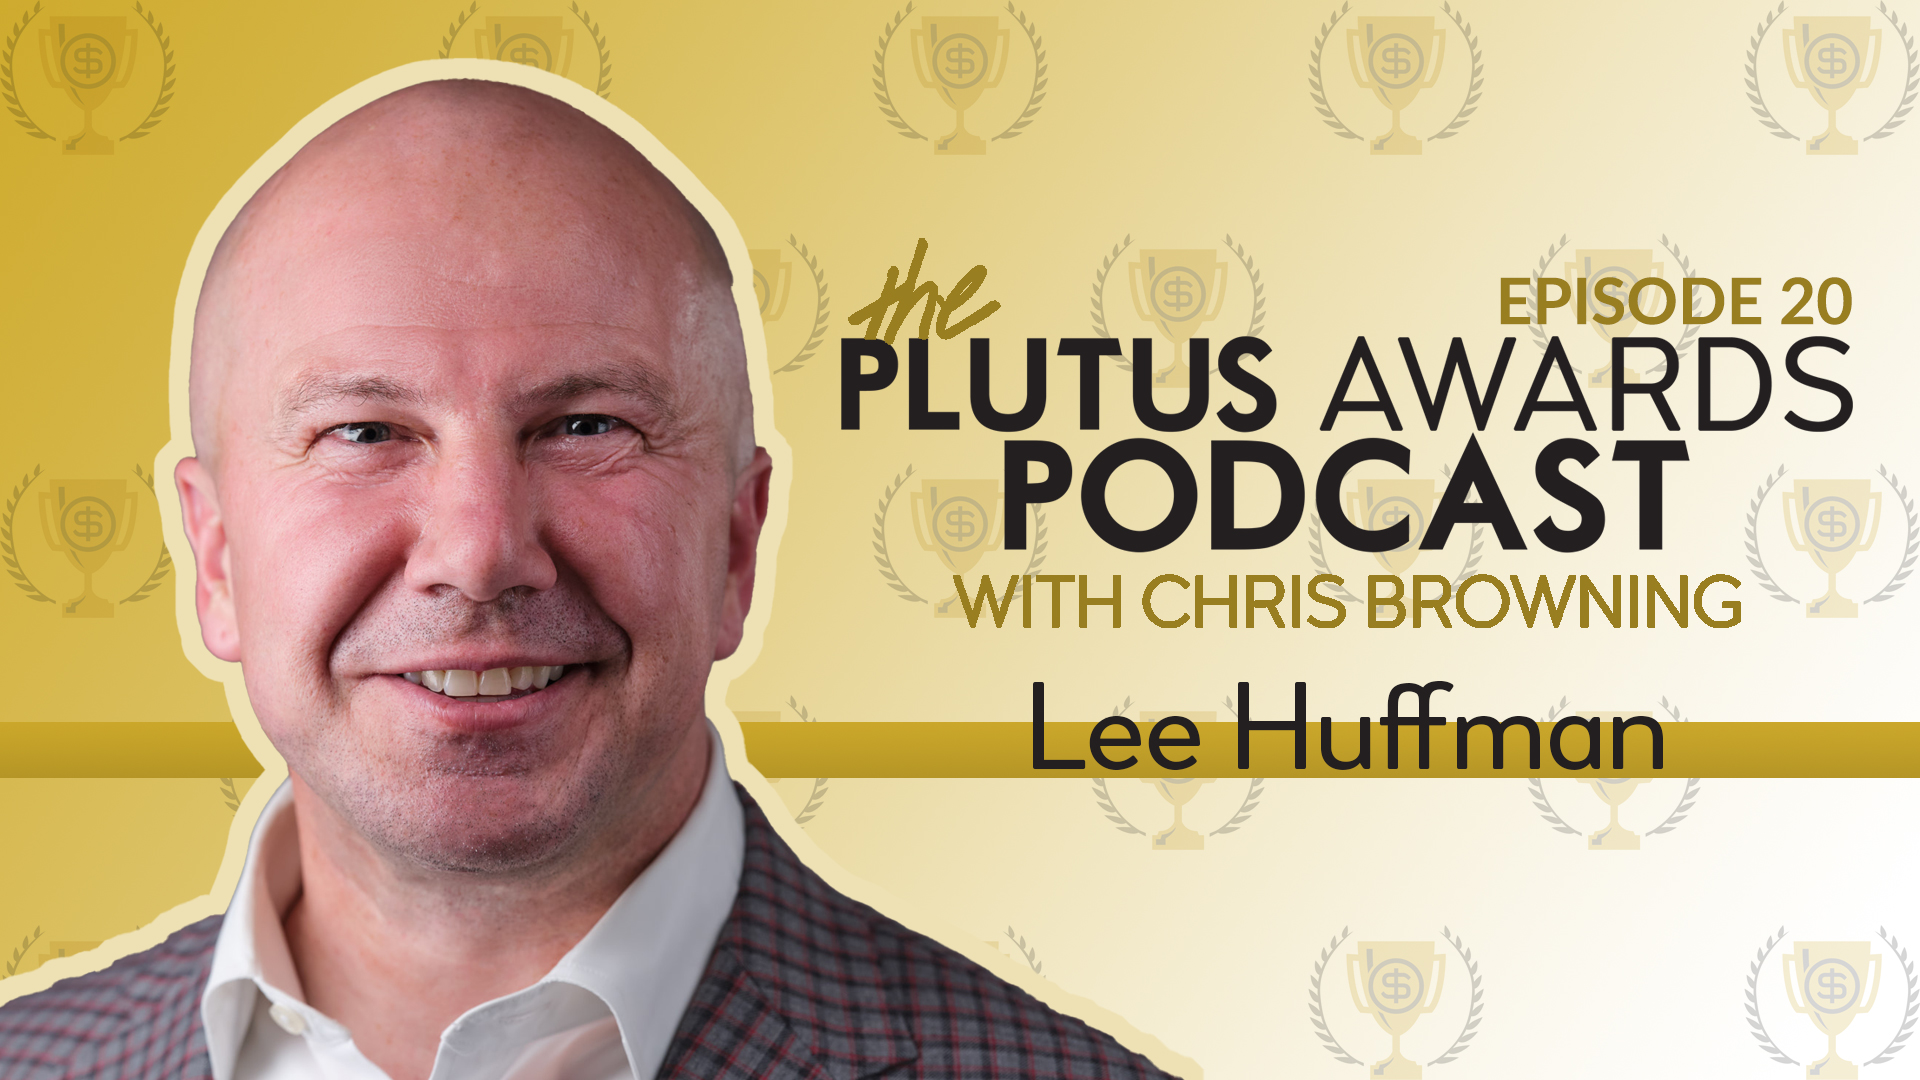 Lee Huffman Plutus Awards Podcast Featured Image